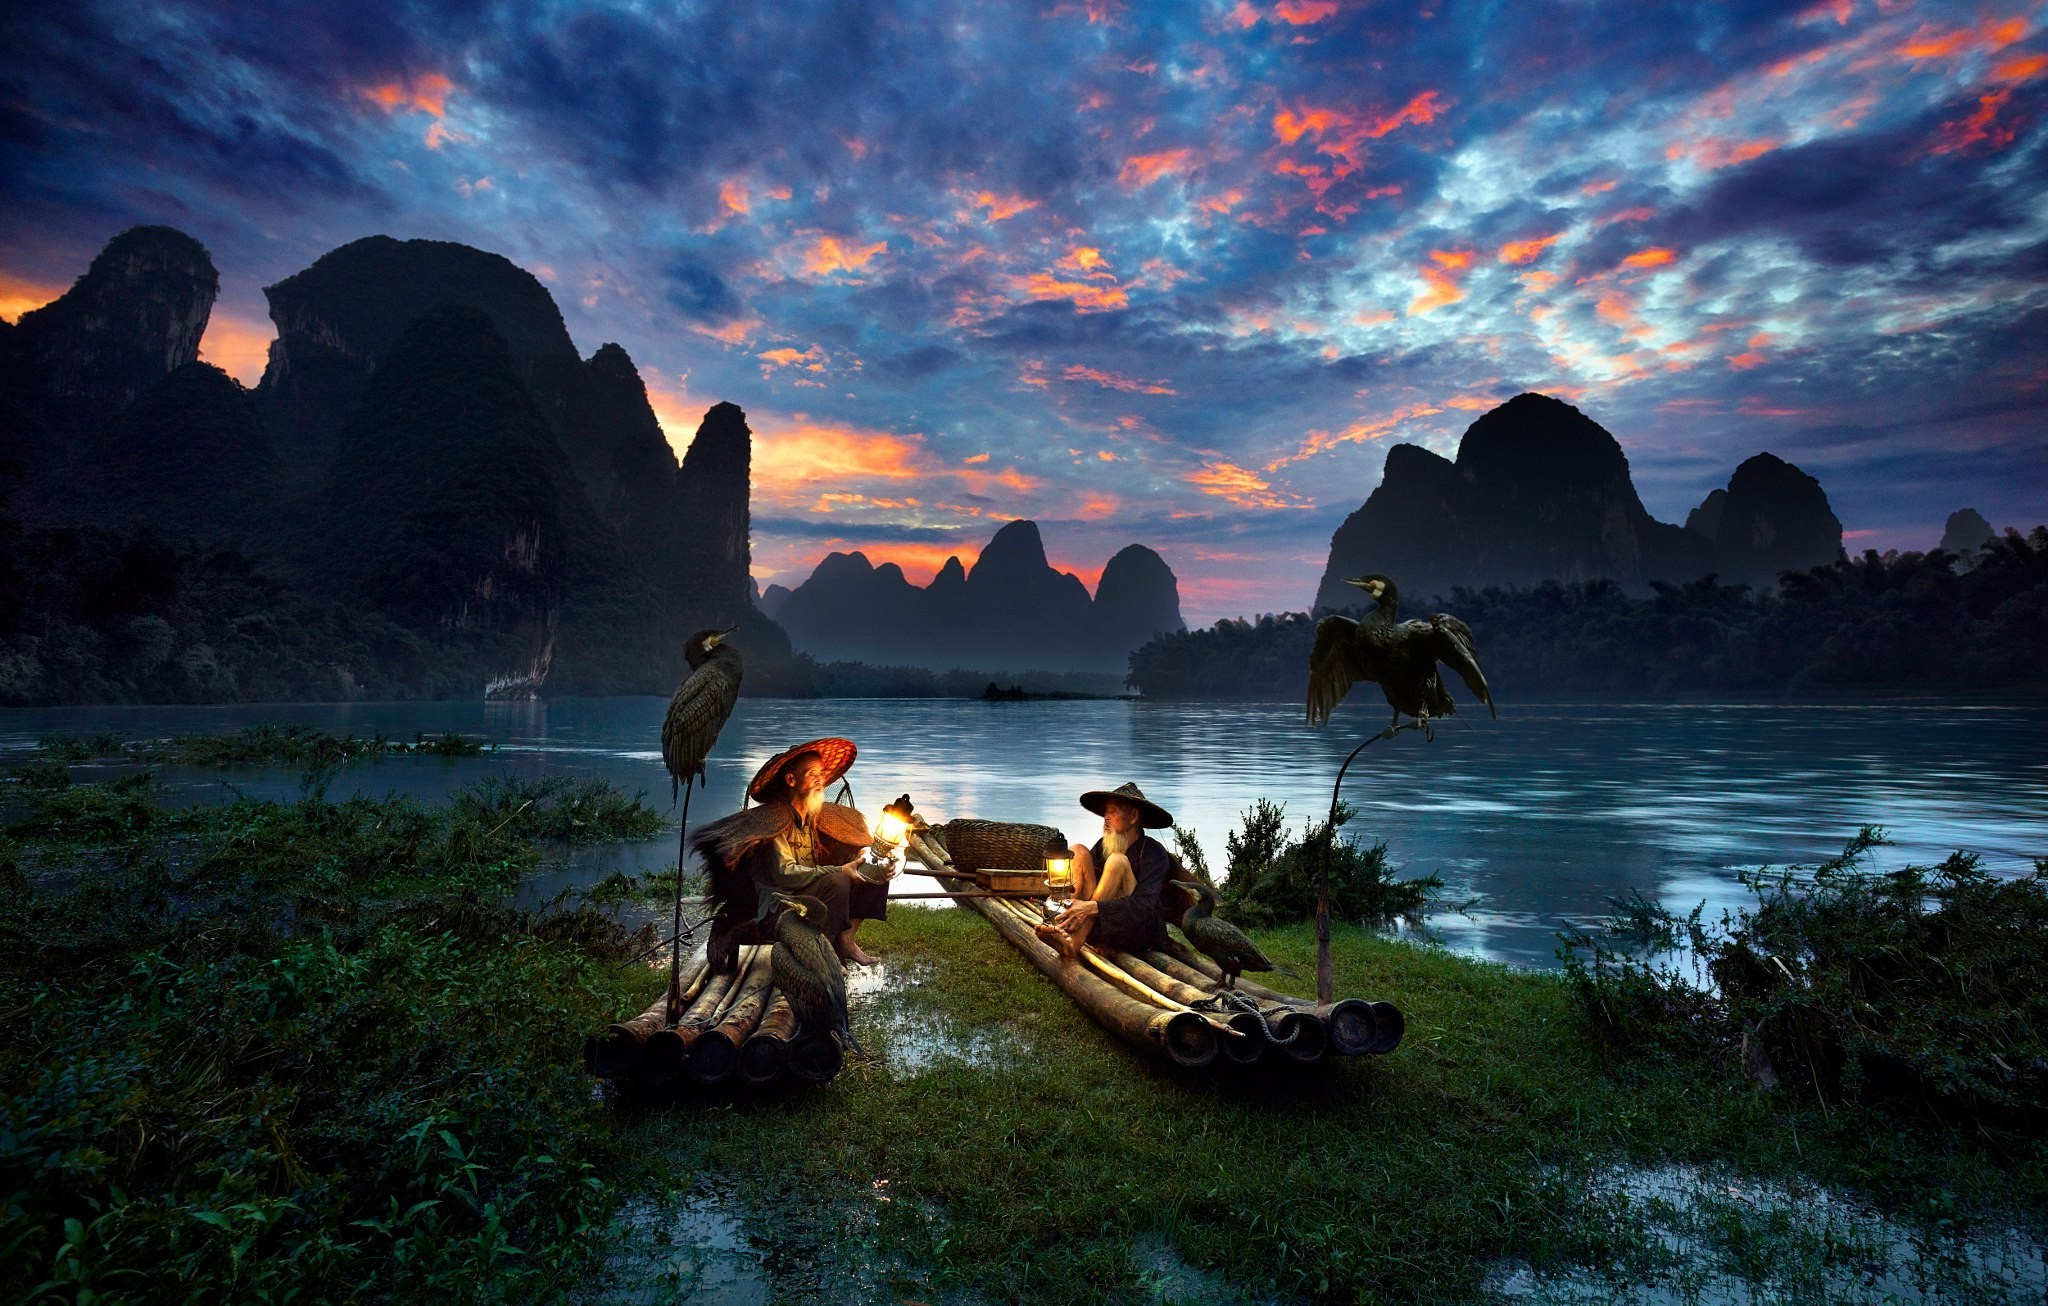 Res: 2048x1306, men, Nature, River, Birds, Asian, Mountain, China Wallpapers HD / Desktop  and Mobile Backgrounds